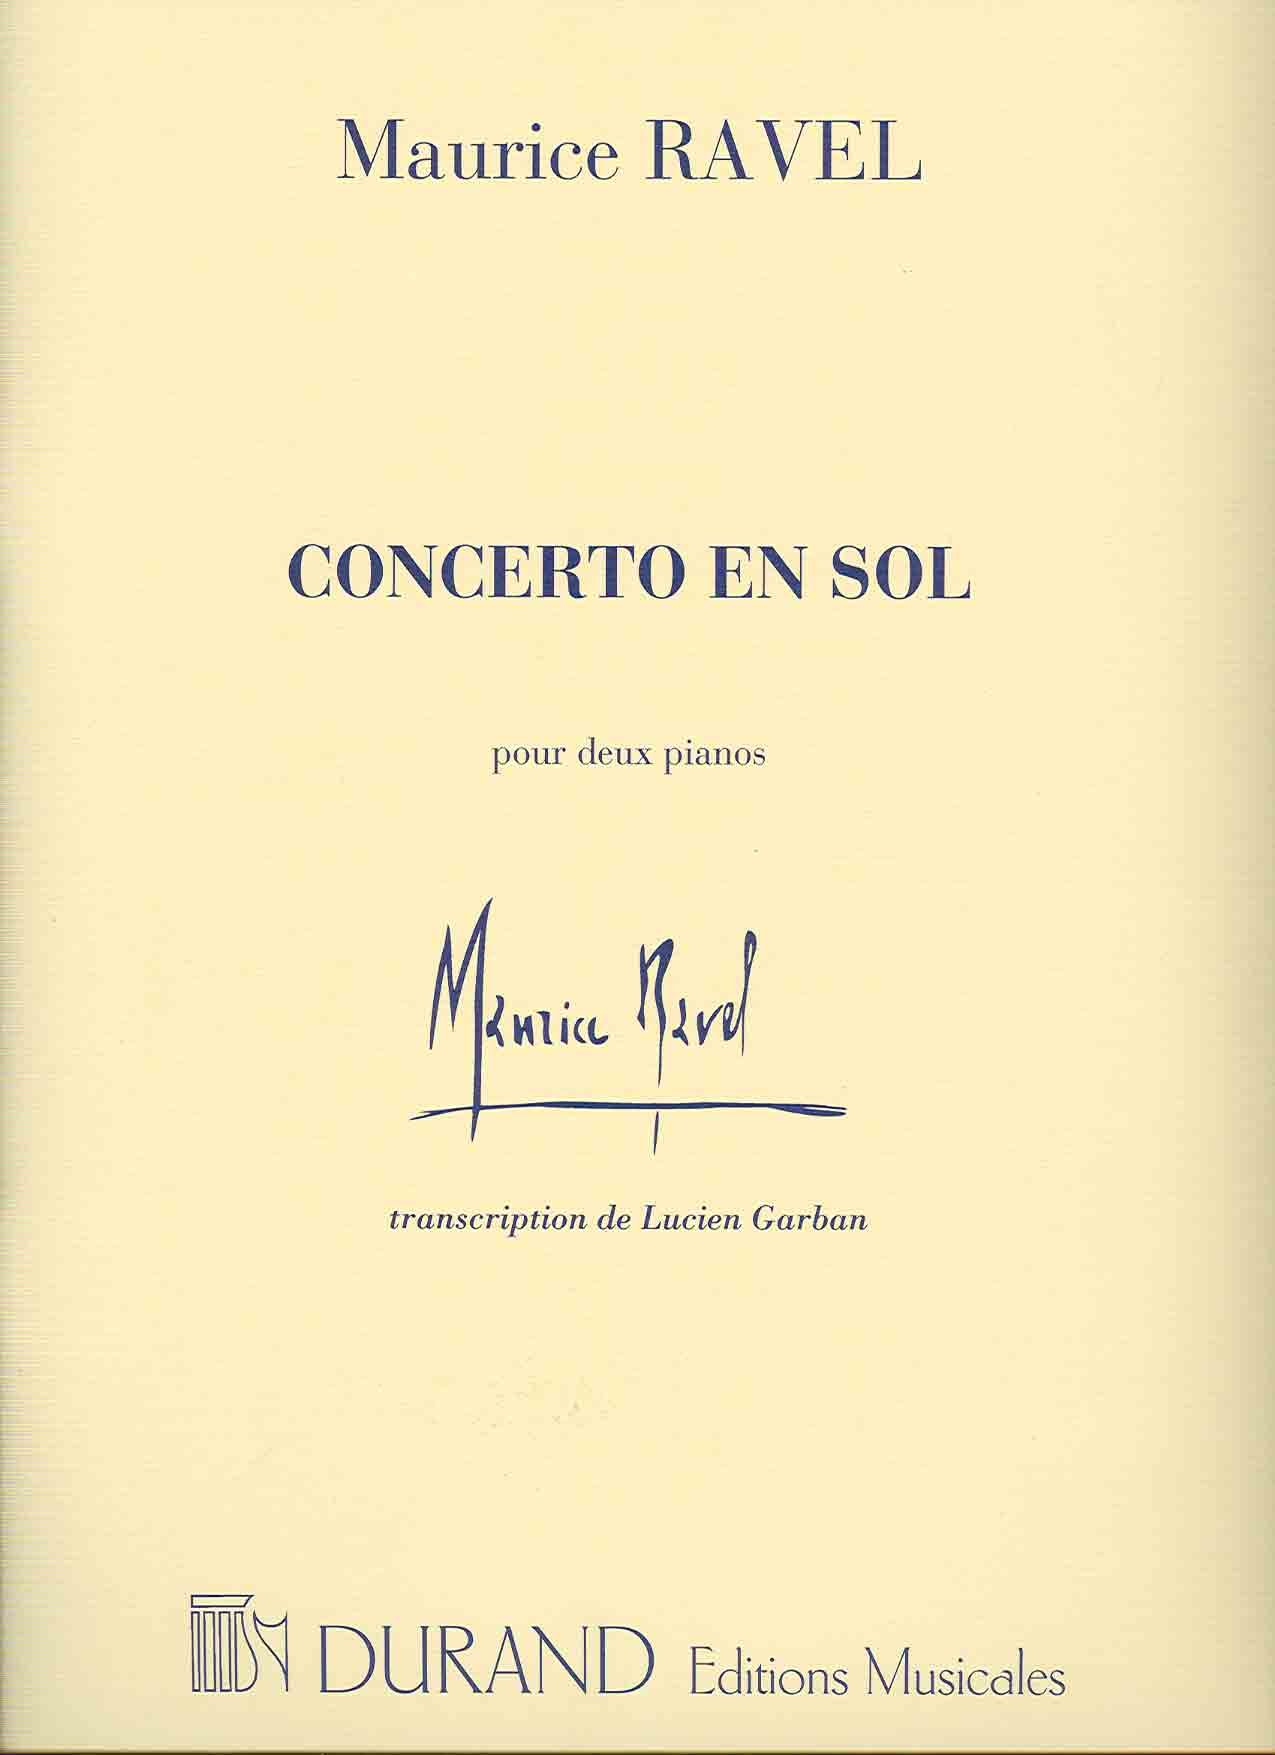 CONCERTO EN SOL PIANO: Amazon.co.uk: MAURICE RAVEL: Books